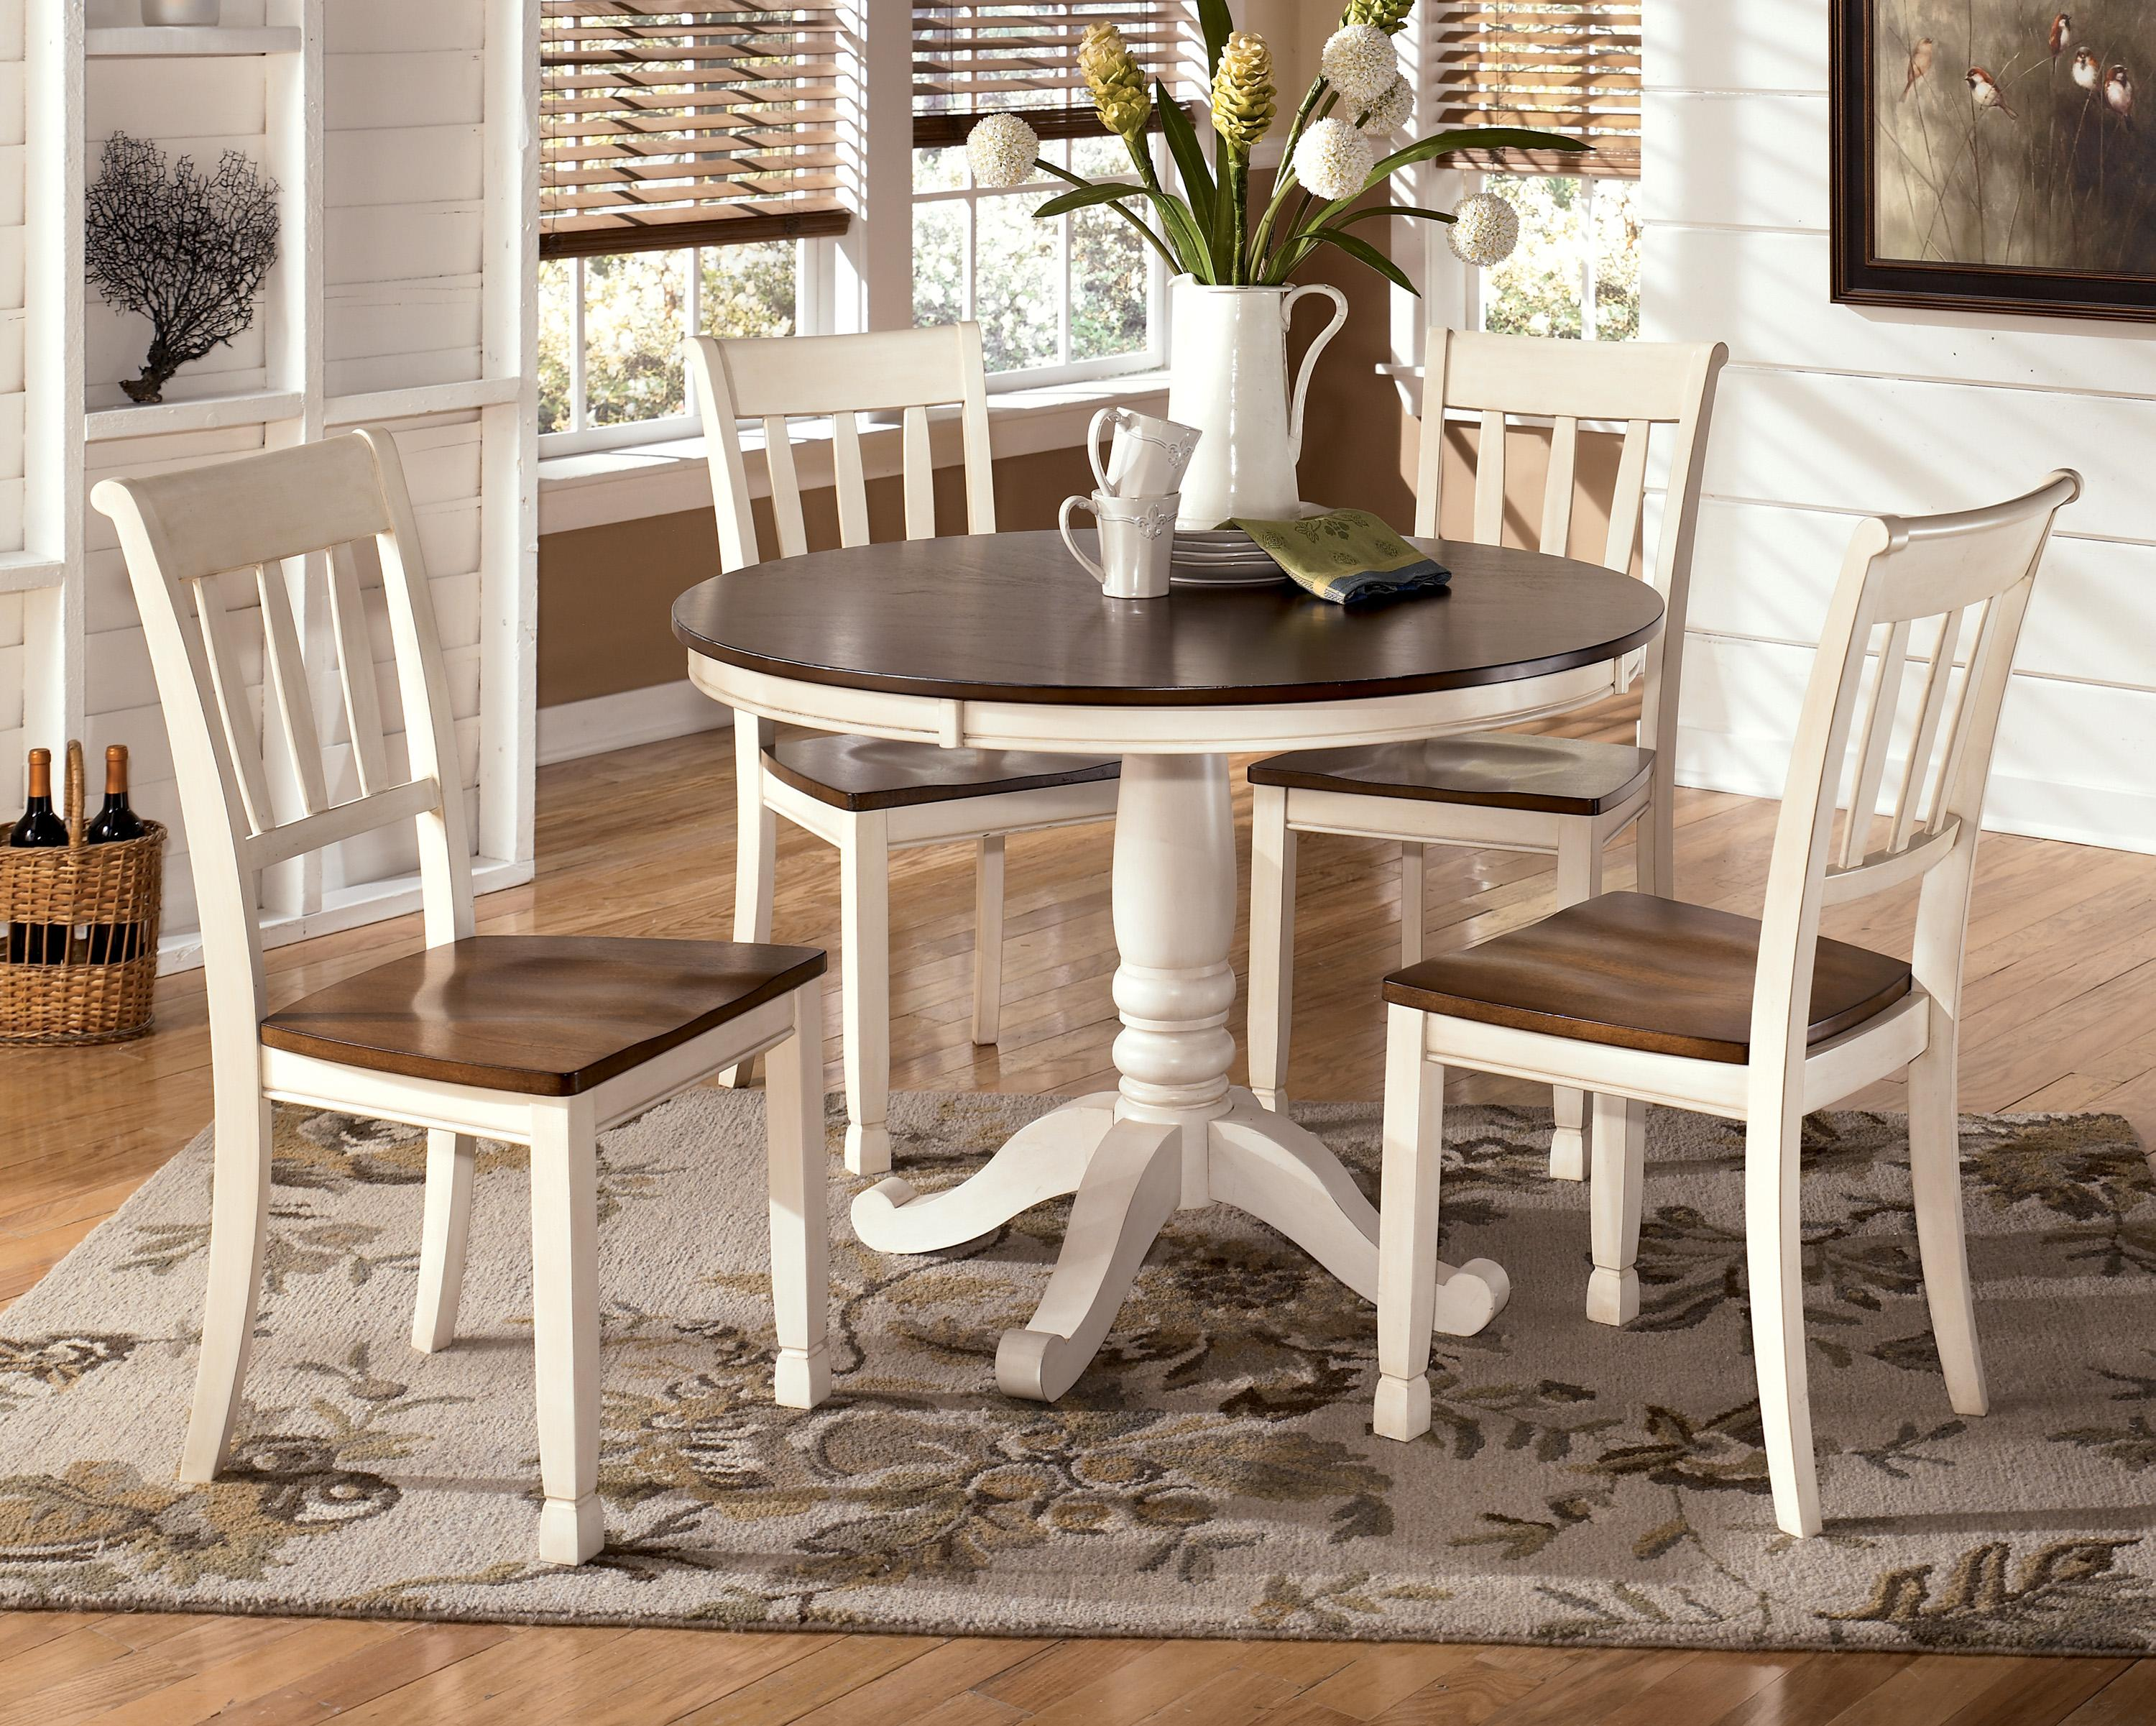 kitchen round table set Signature Design by Ashley Whitney 5 Piece Round Table Set Item Number D